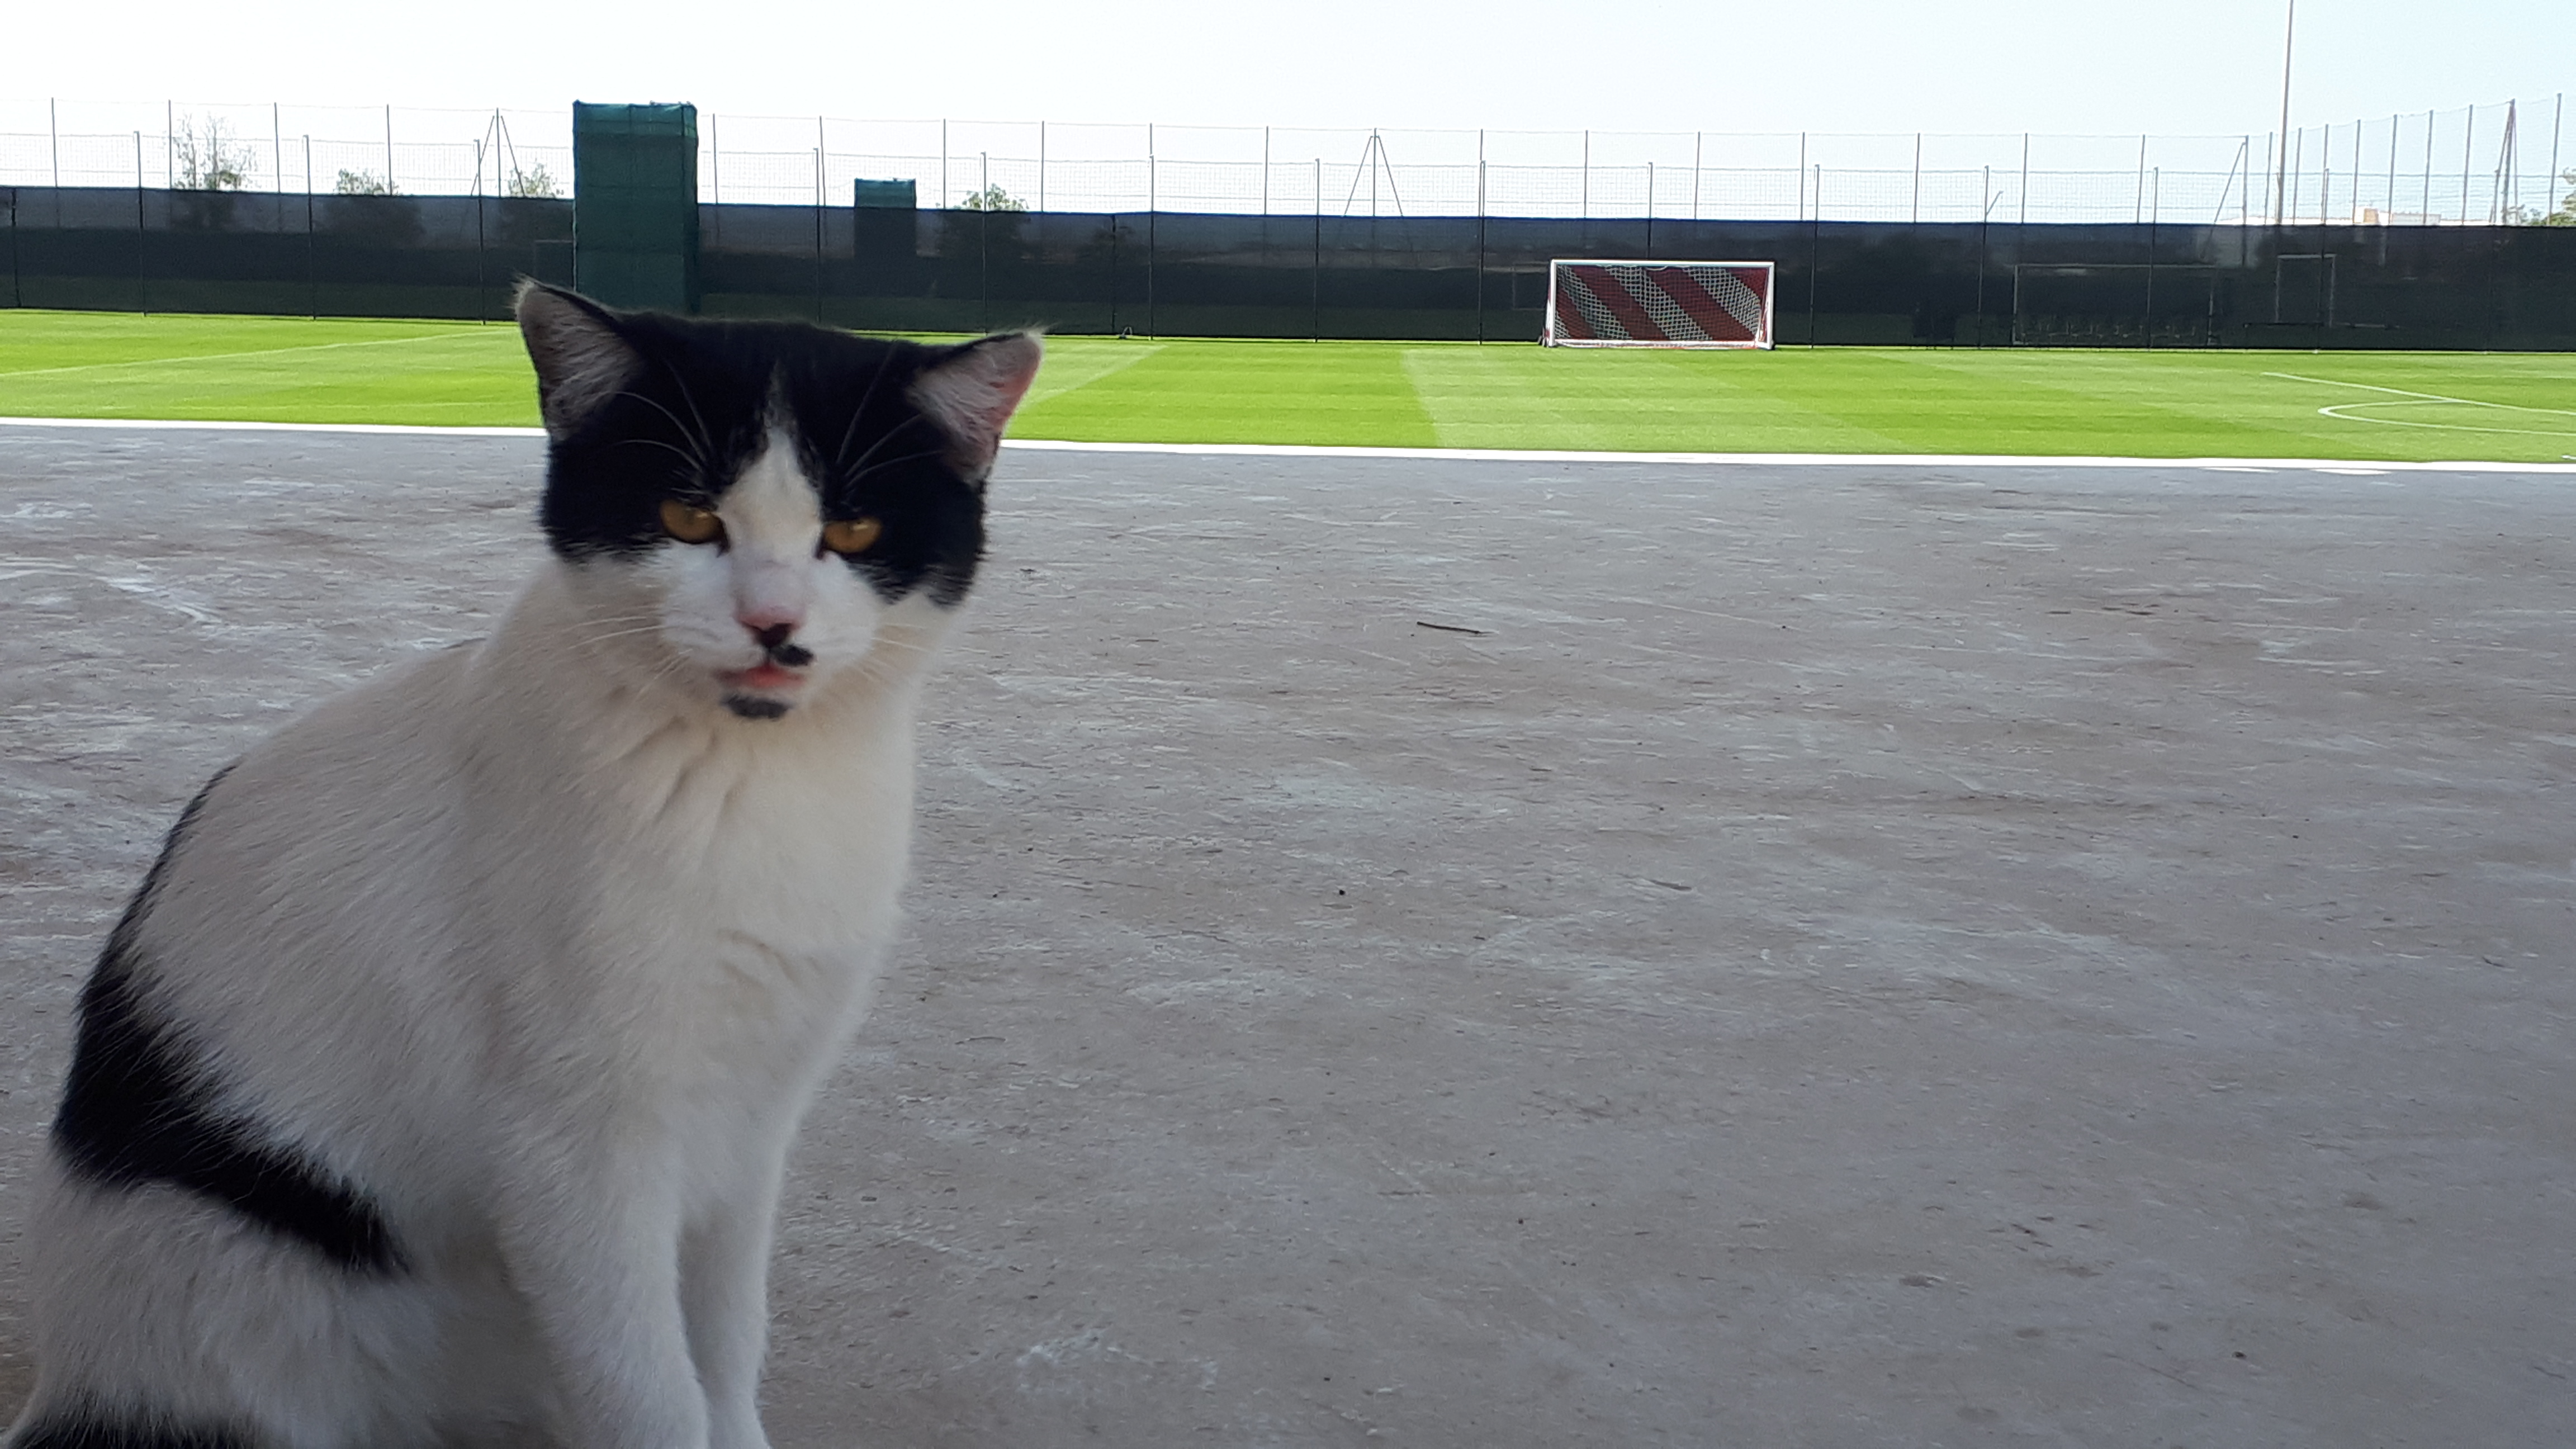 The cat I met at the Jebel Ali Centre of Excellence.